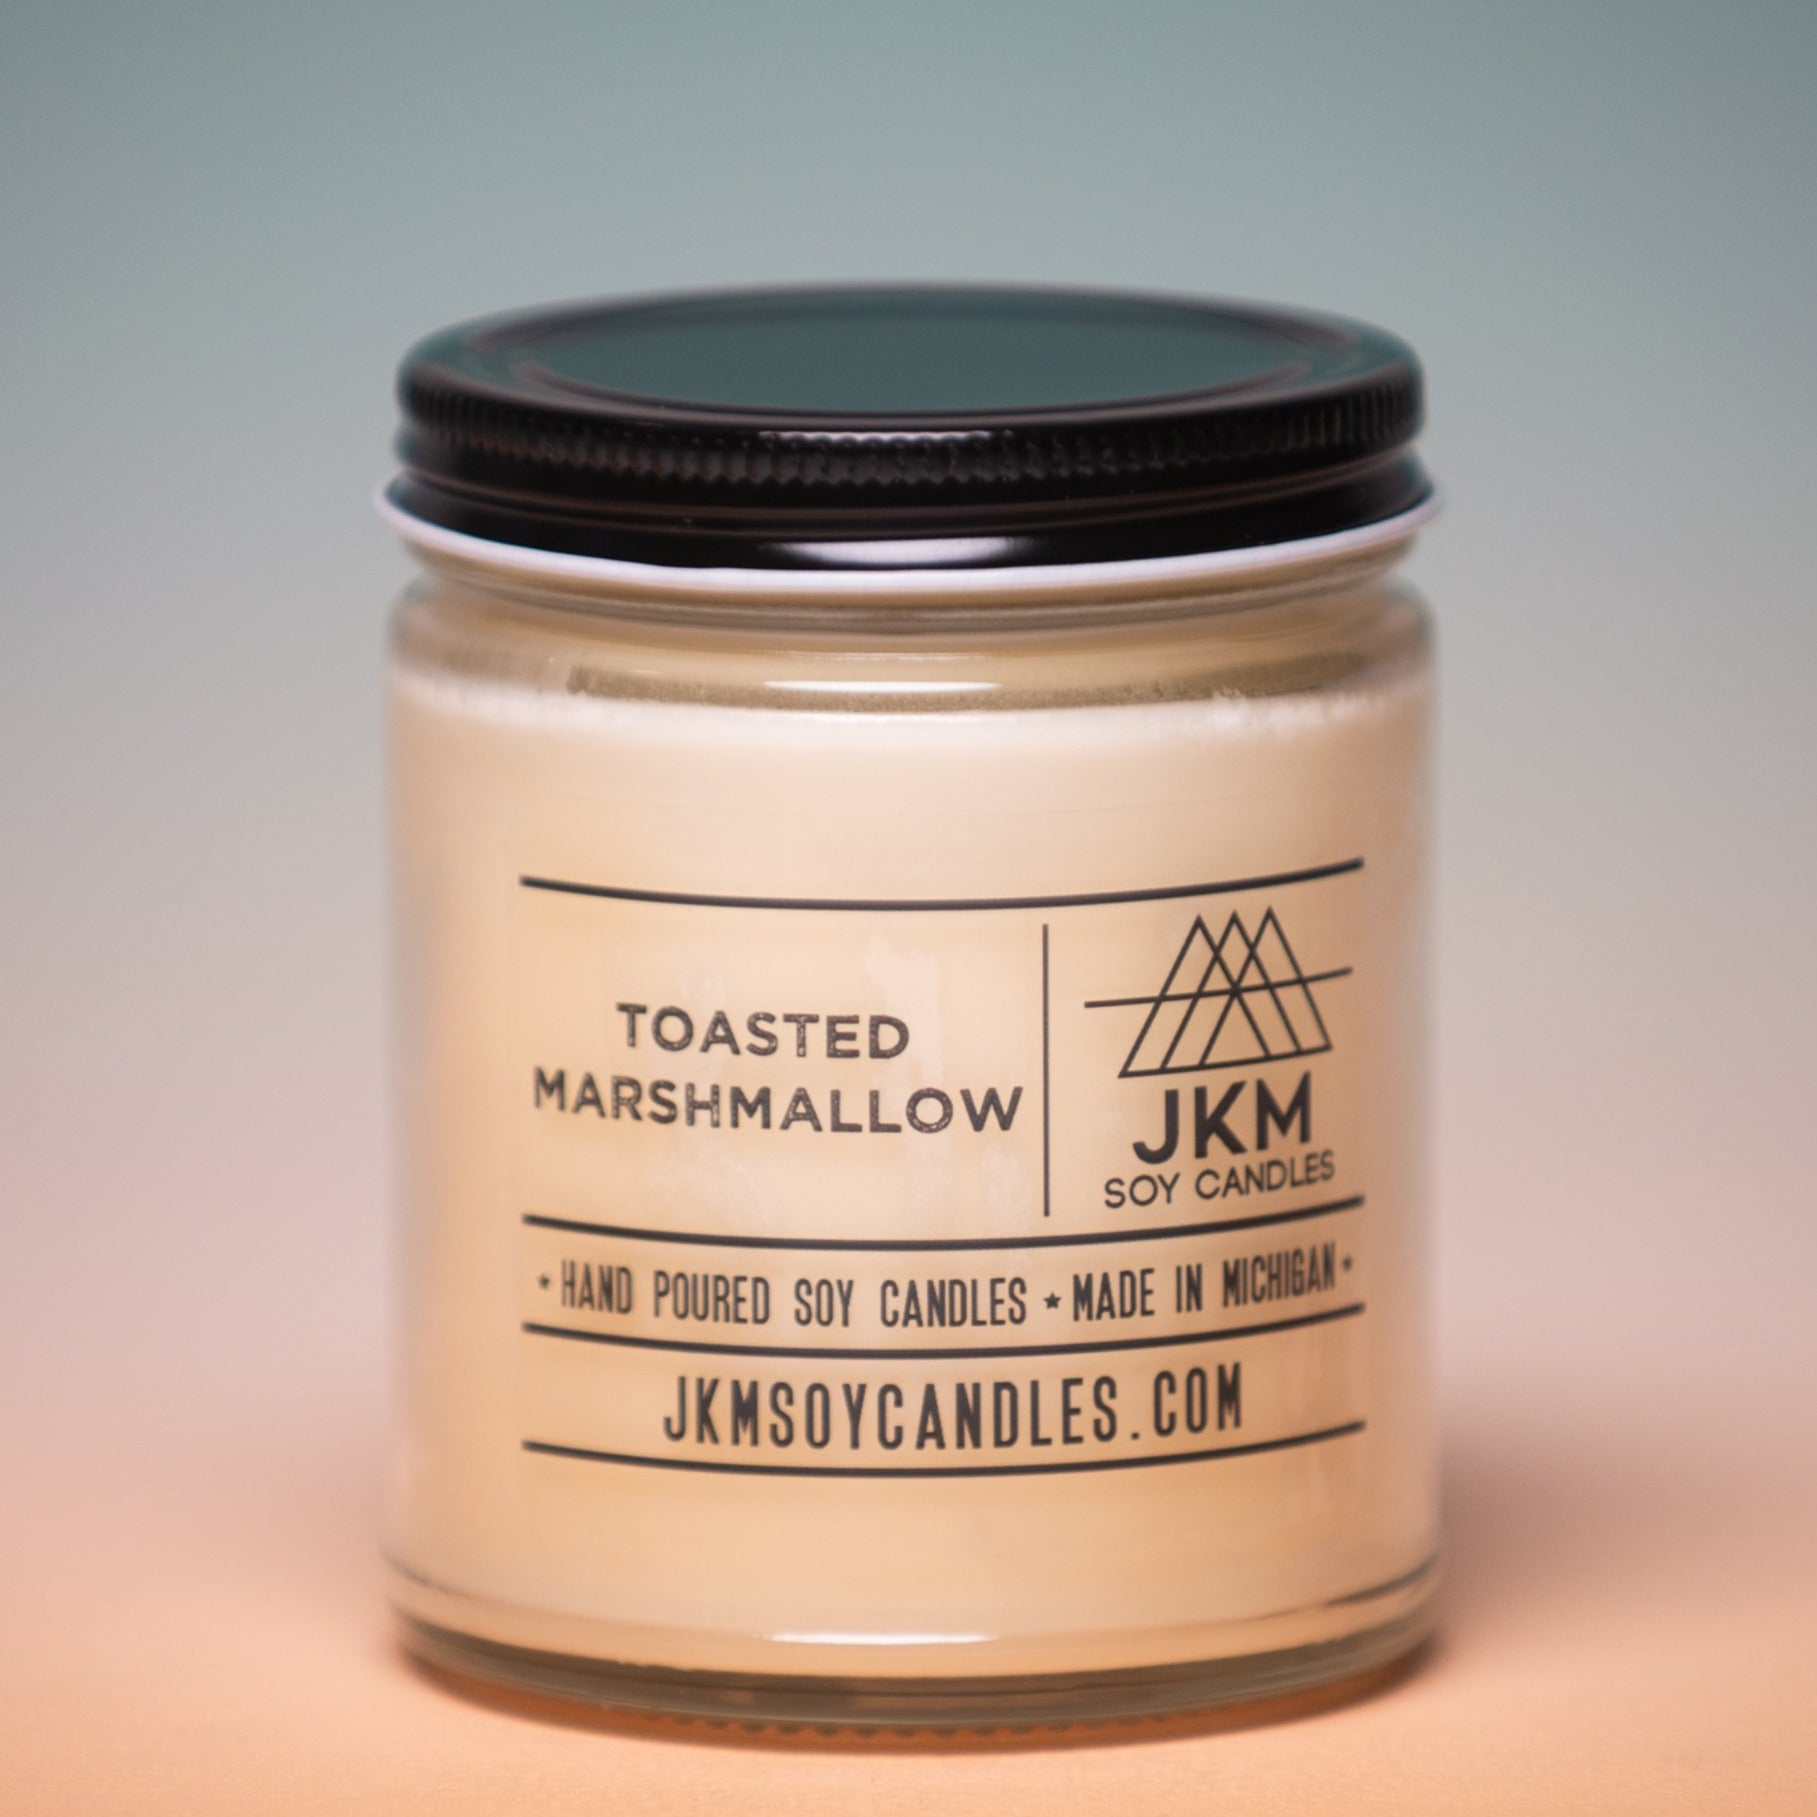 JKM Soy Candle - Toasted Marshmallow, JKM Soy Candles, Handcrafted Home Goods and Gifts